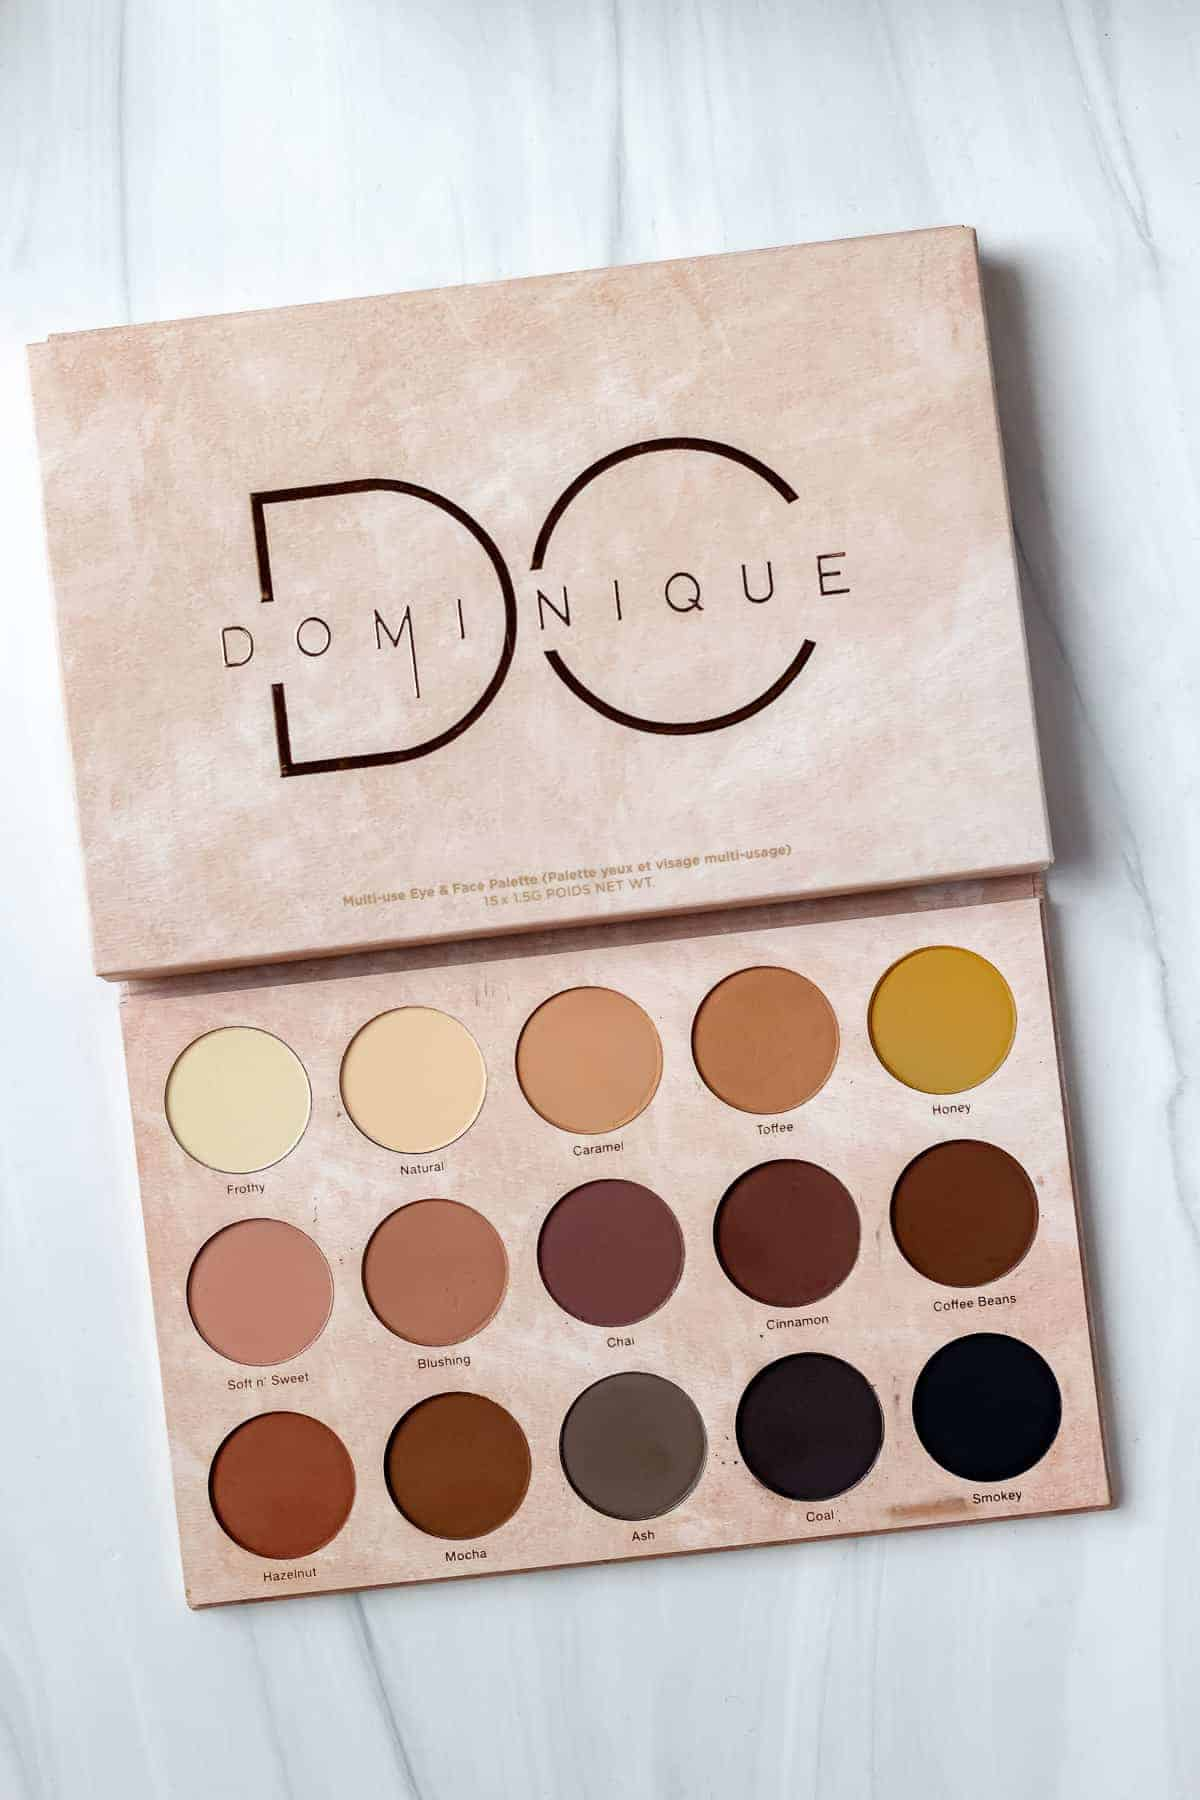 Dominique Cosmetics Transition Palette on a white background